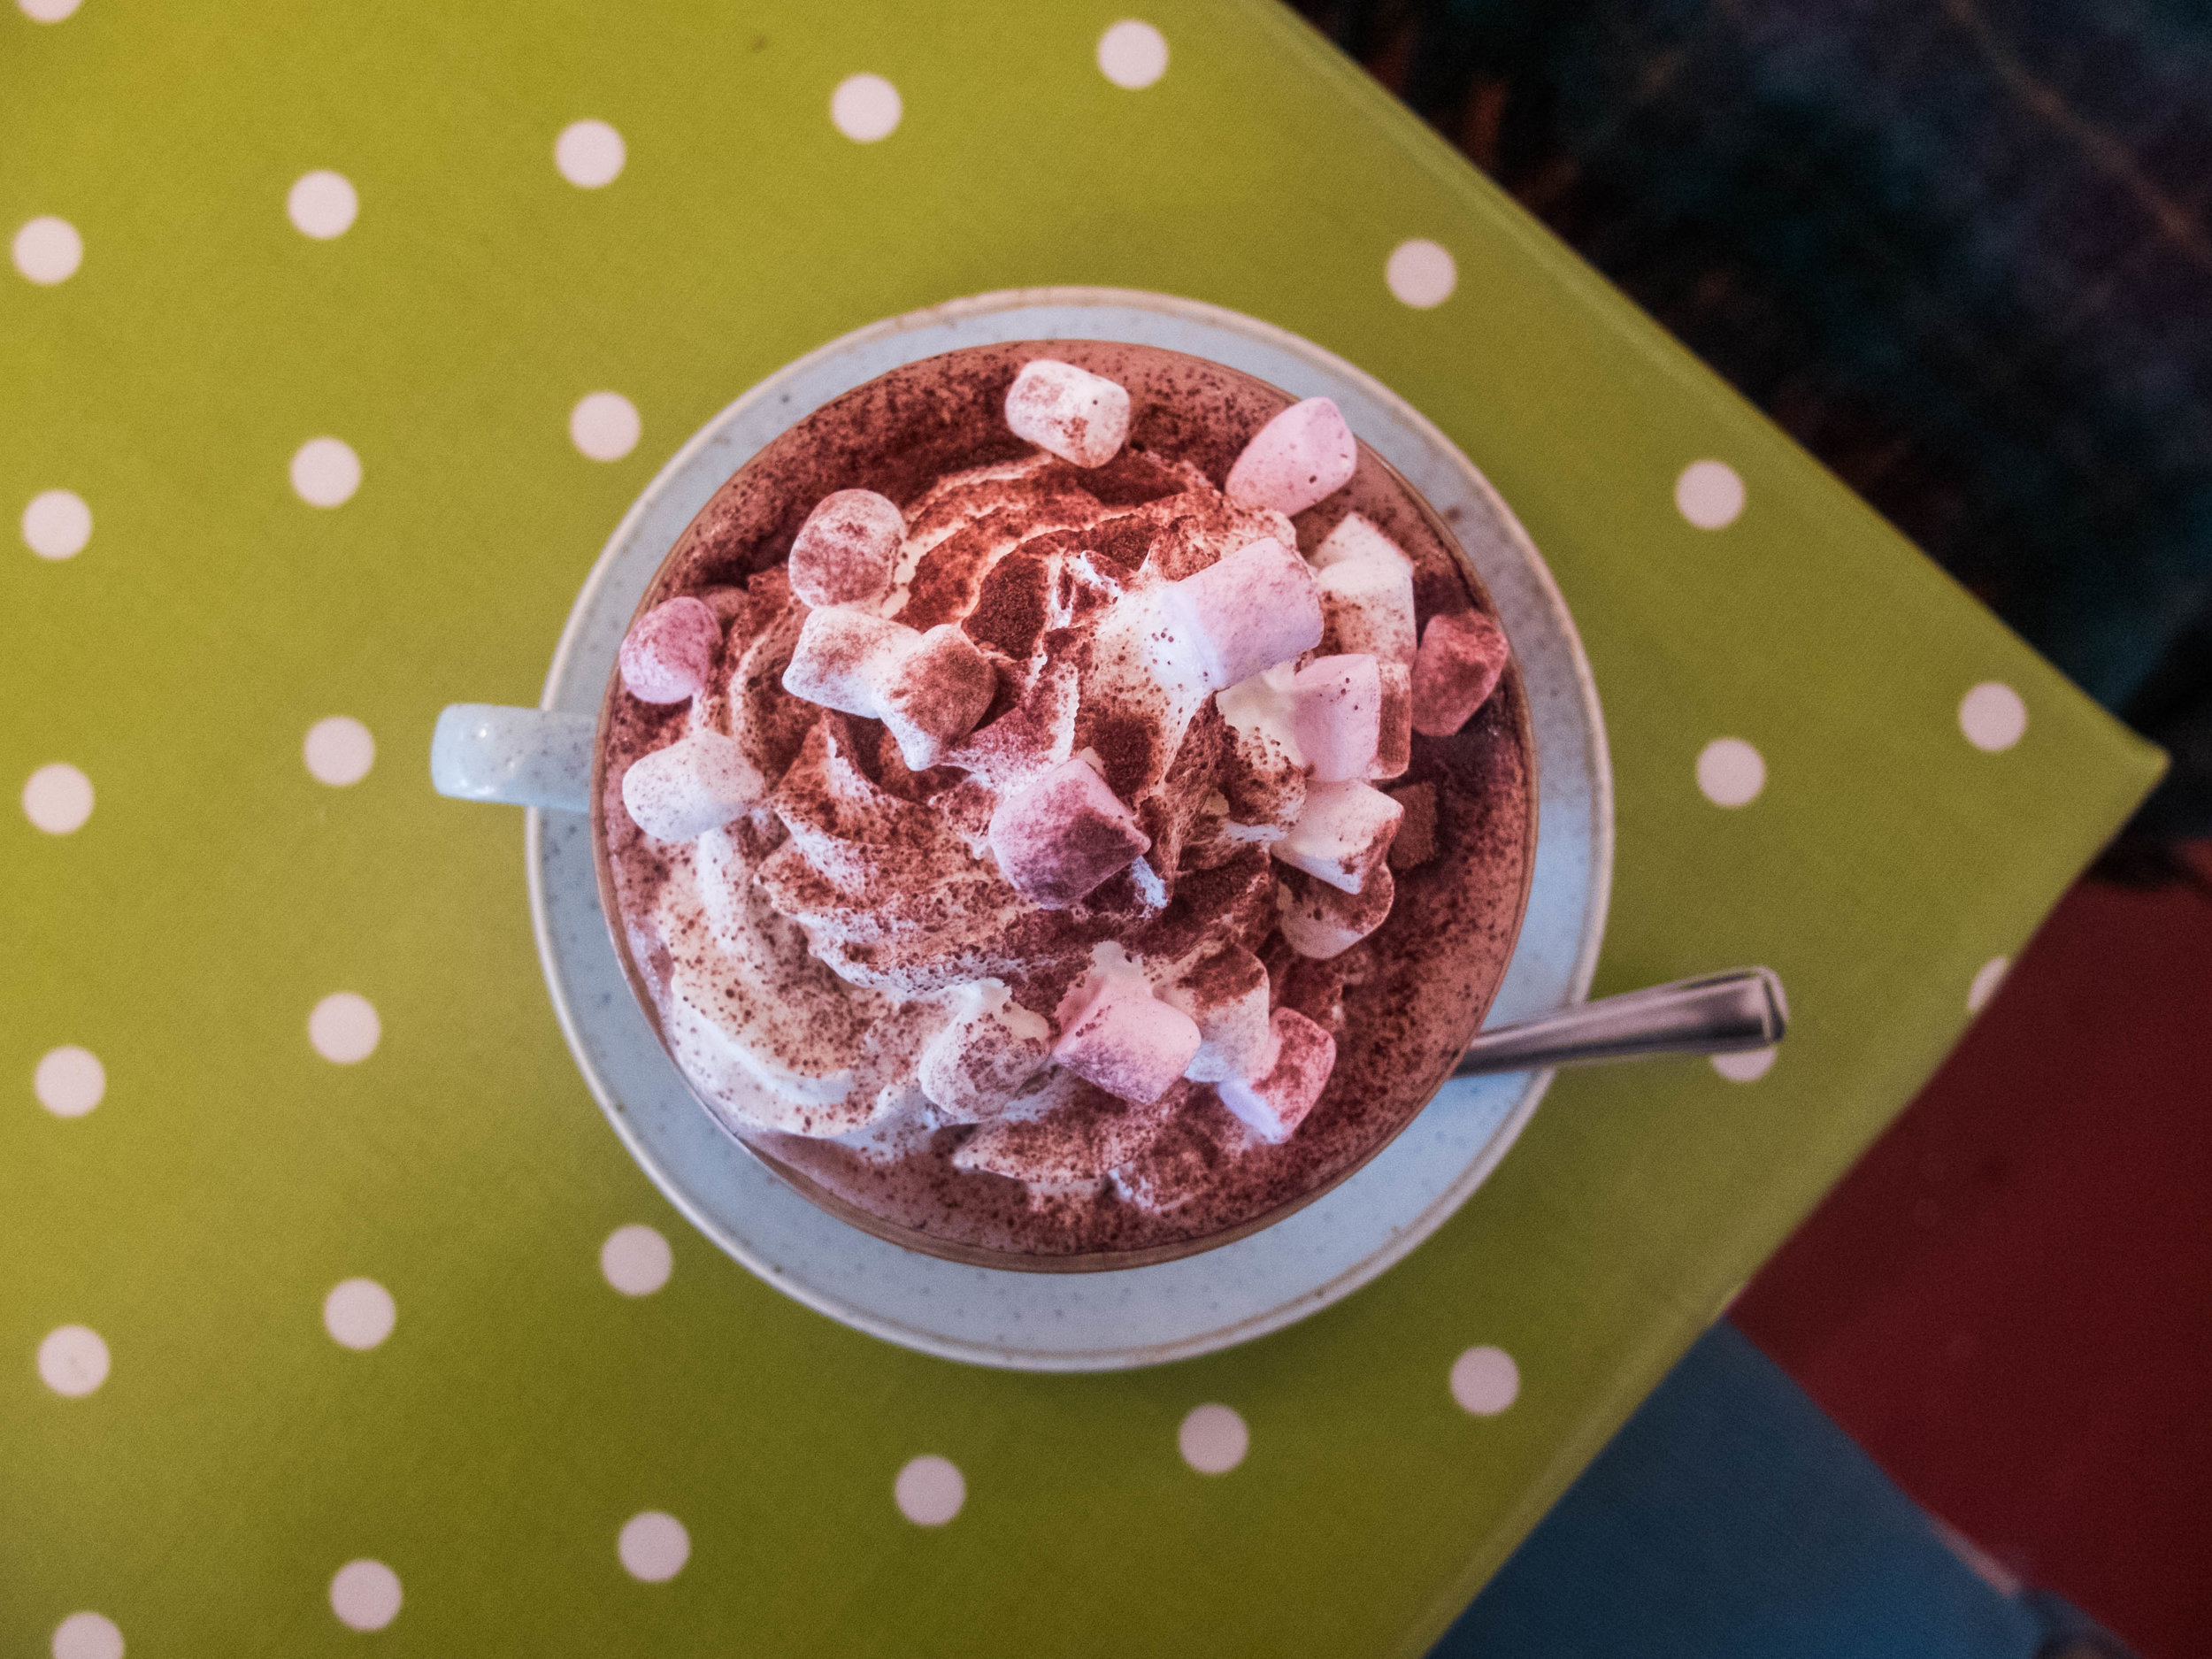 A cup of hot chocolate topped with marshmallows and whipped cream and dusted with chocolate powder